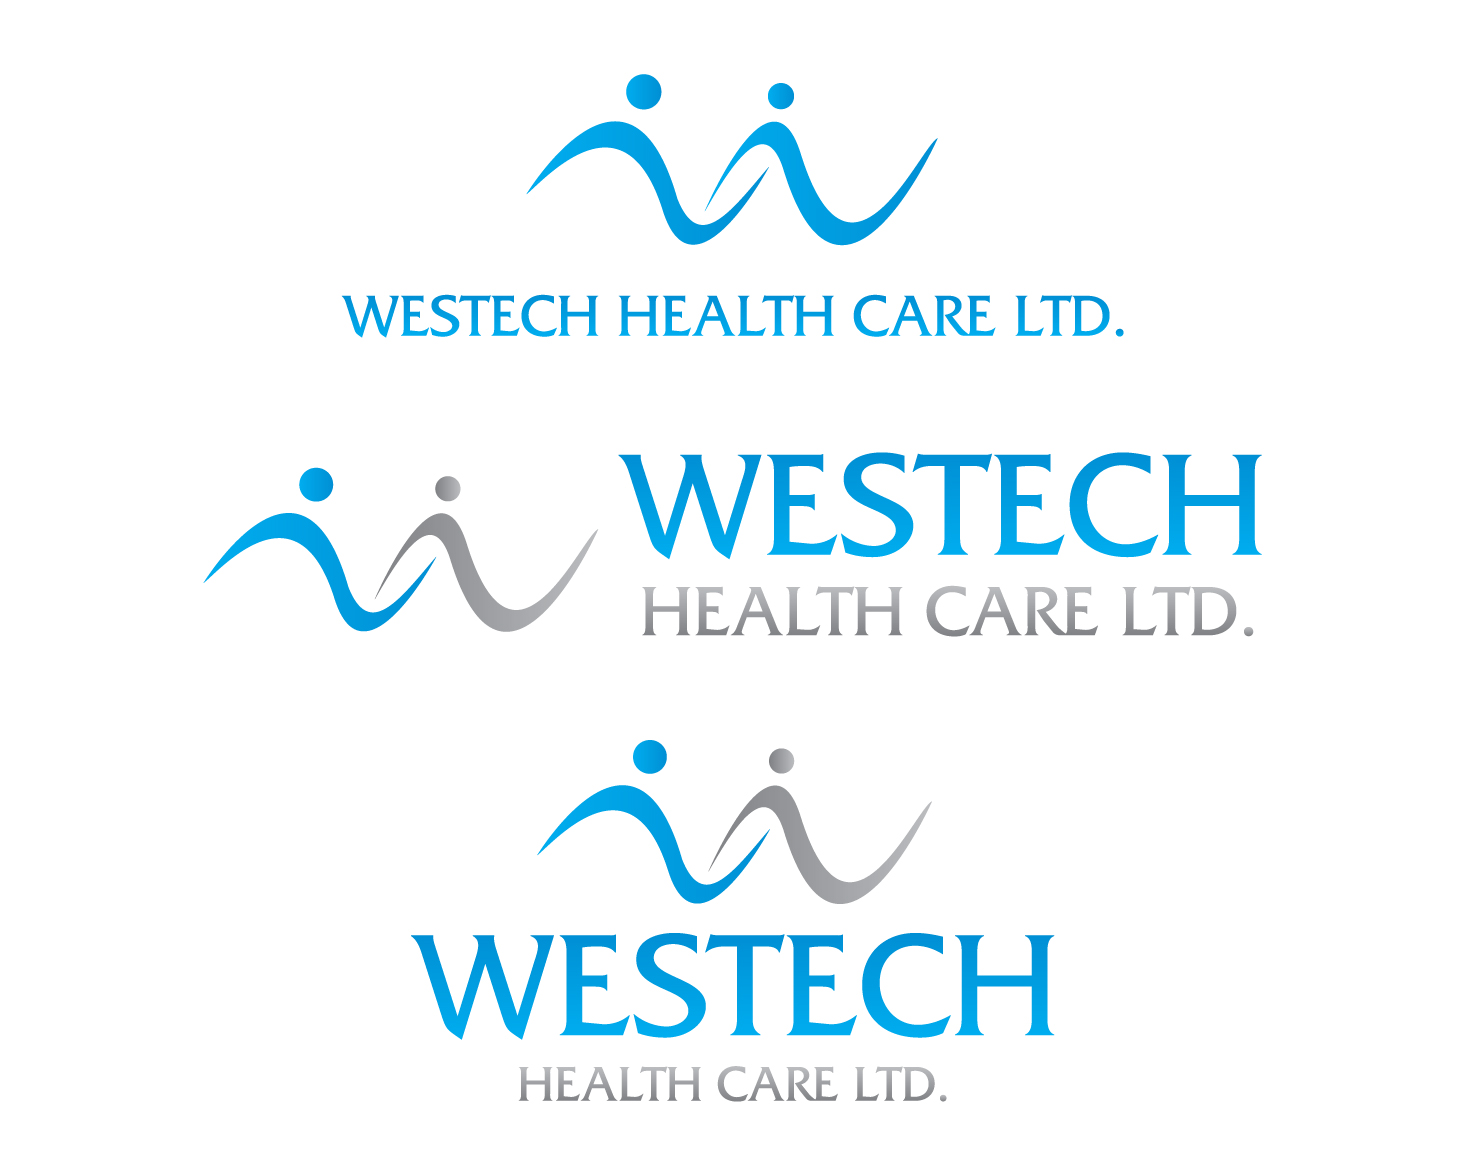 Logo Design by rA - Entry No. 139 in the Logo Design Contest Creative Logo Design for Westech Health Care Ltd..